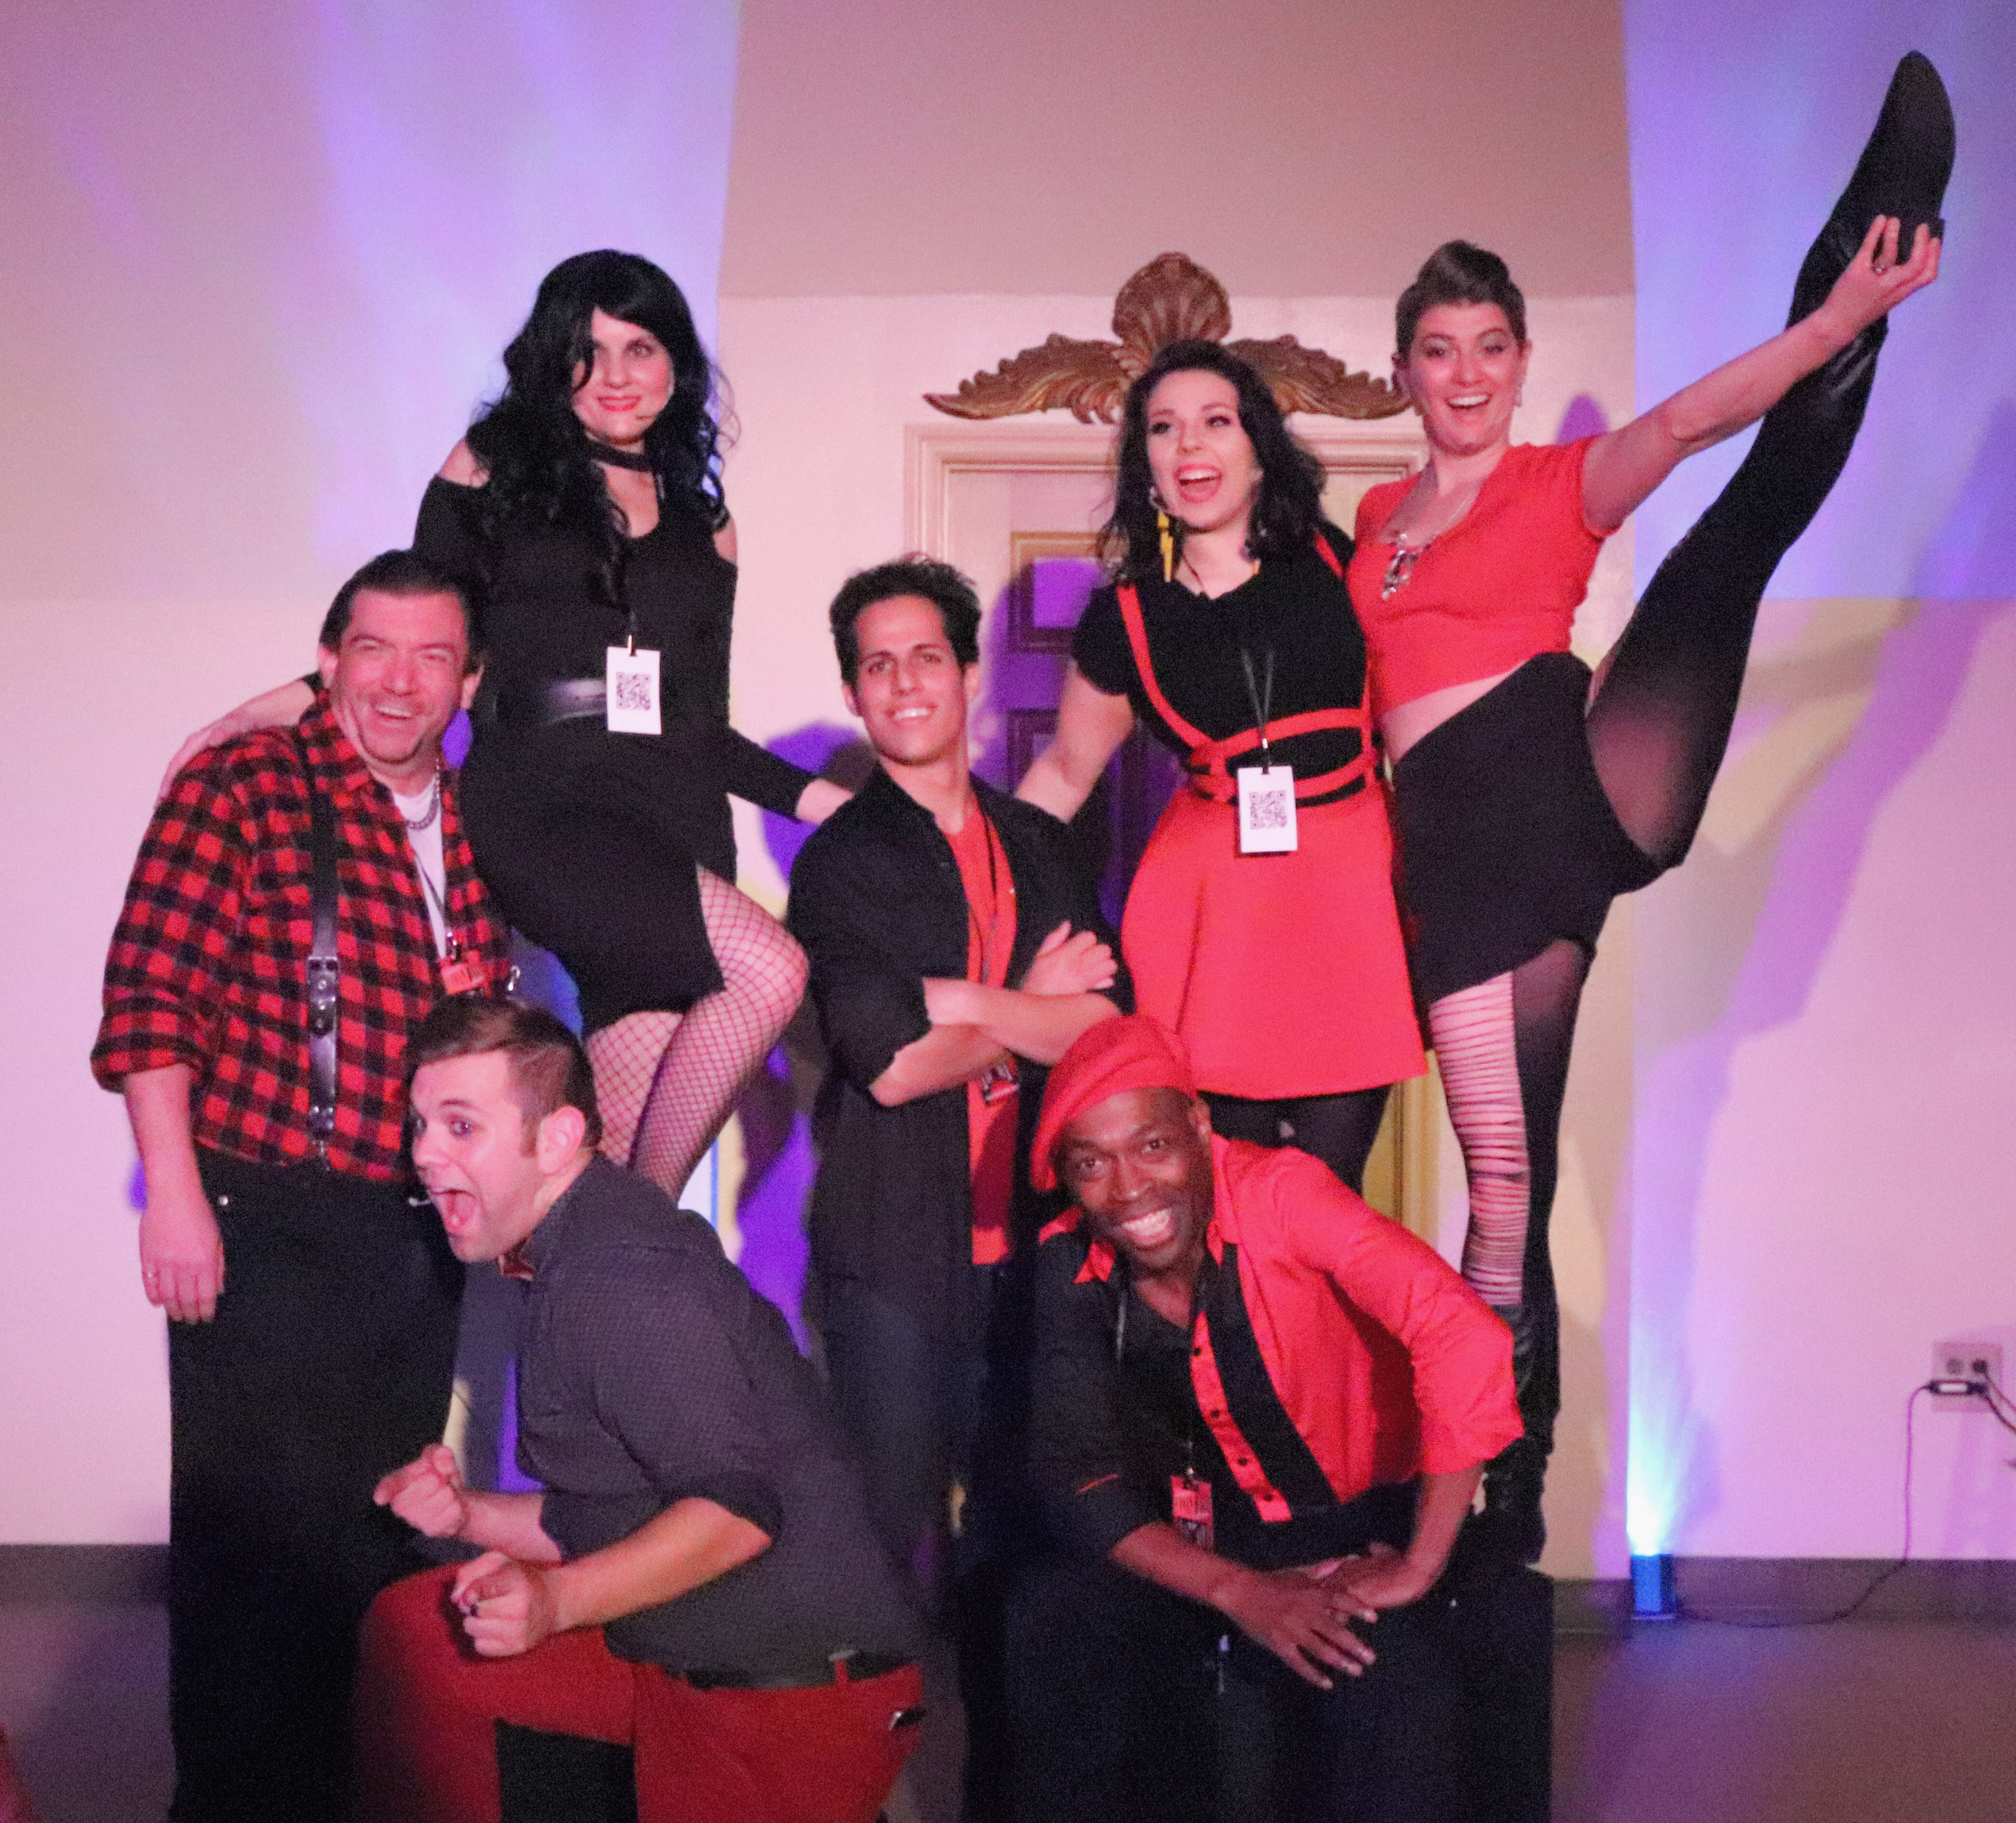 BWW Review: BROADWAY BENT: VILLIANS STEP INTO THE BAD SIDE at The Studio At Carrollwood Cultural Center